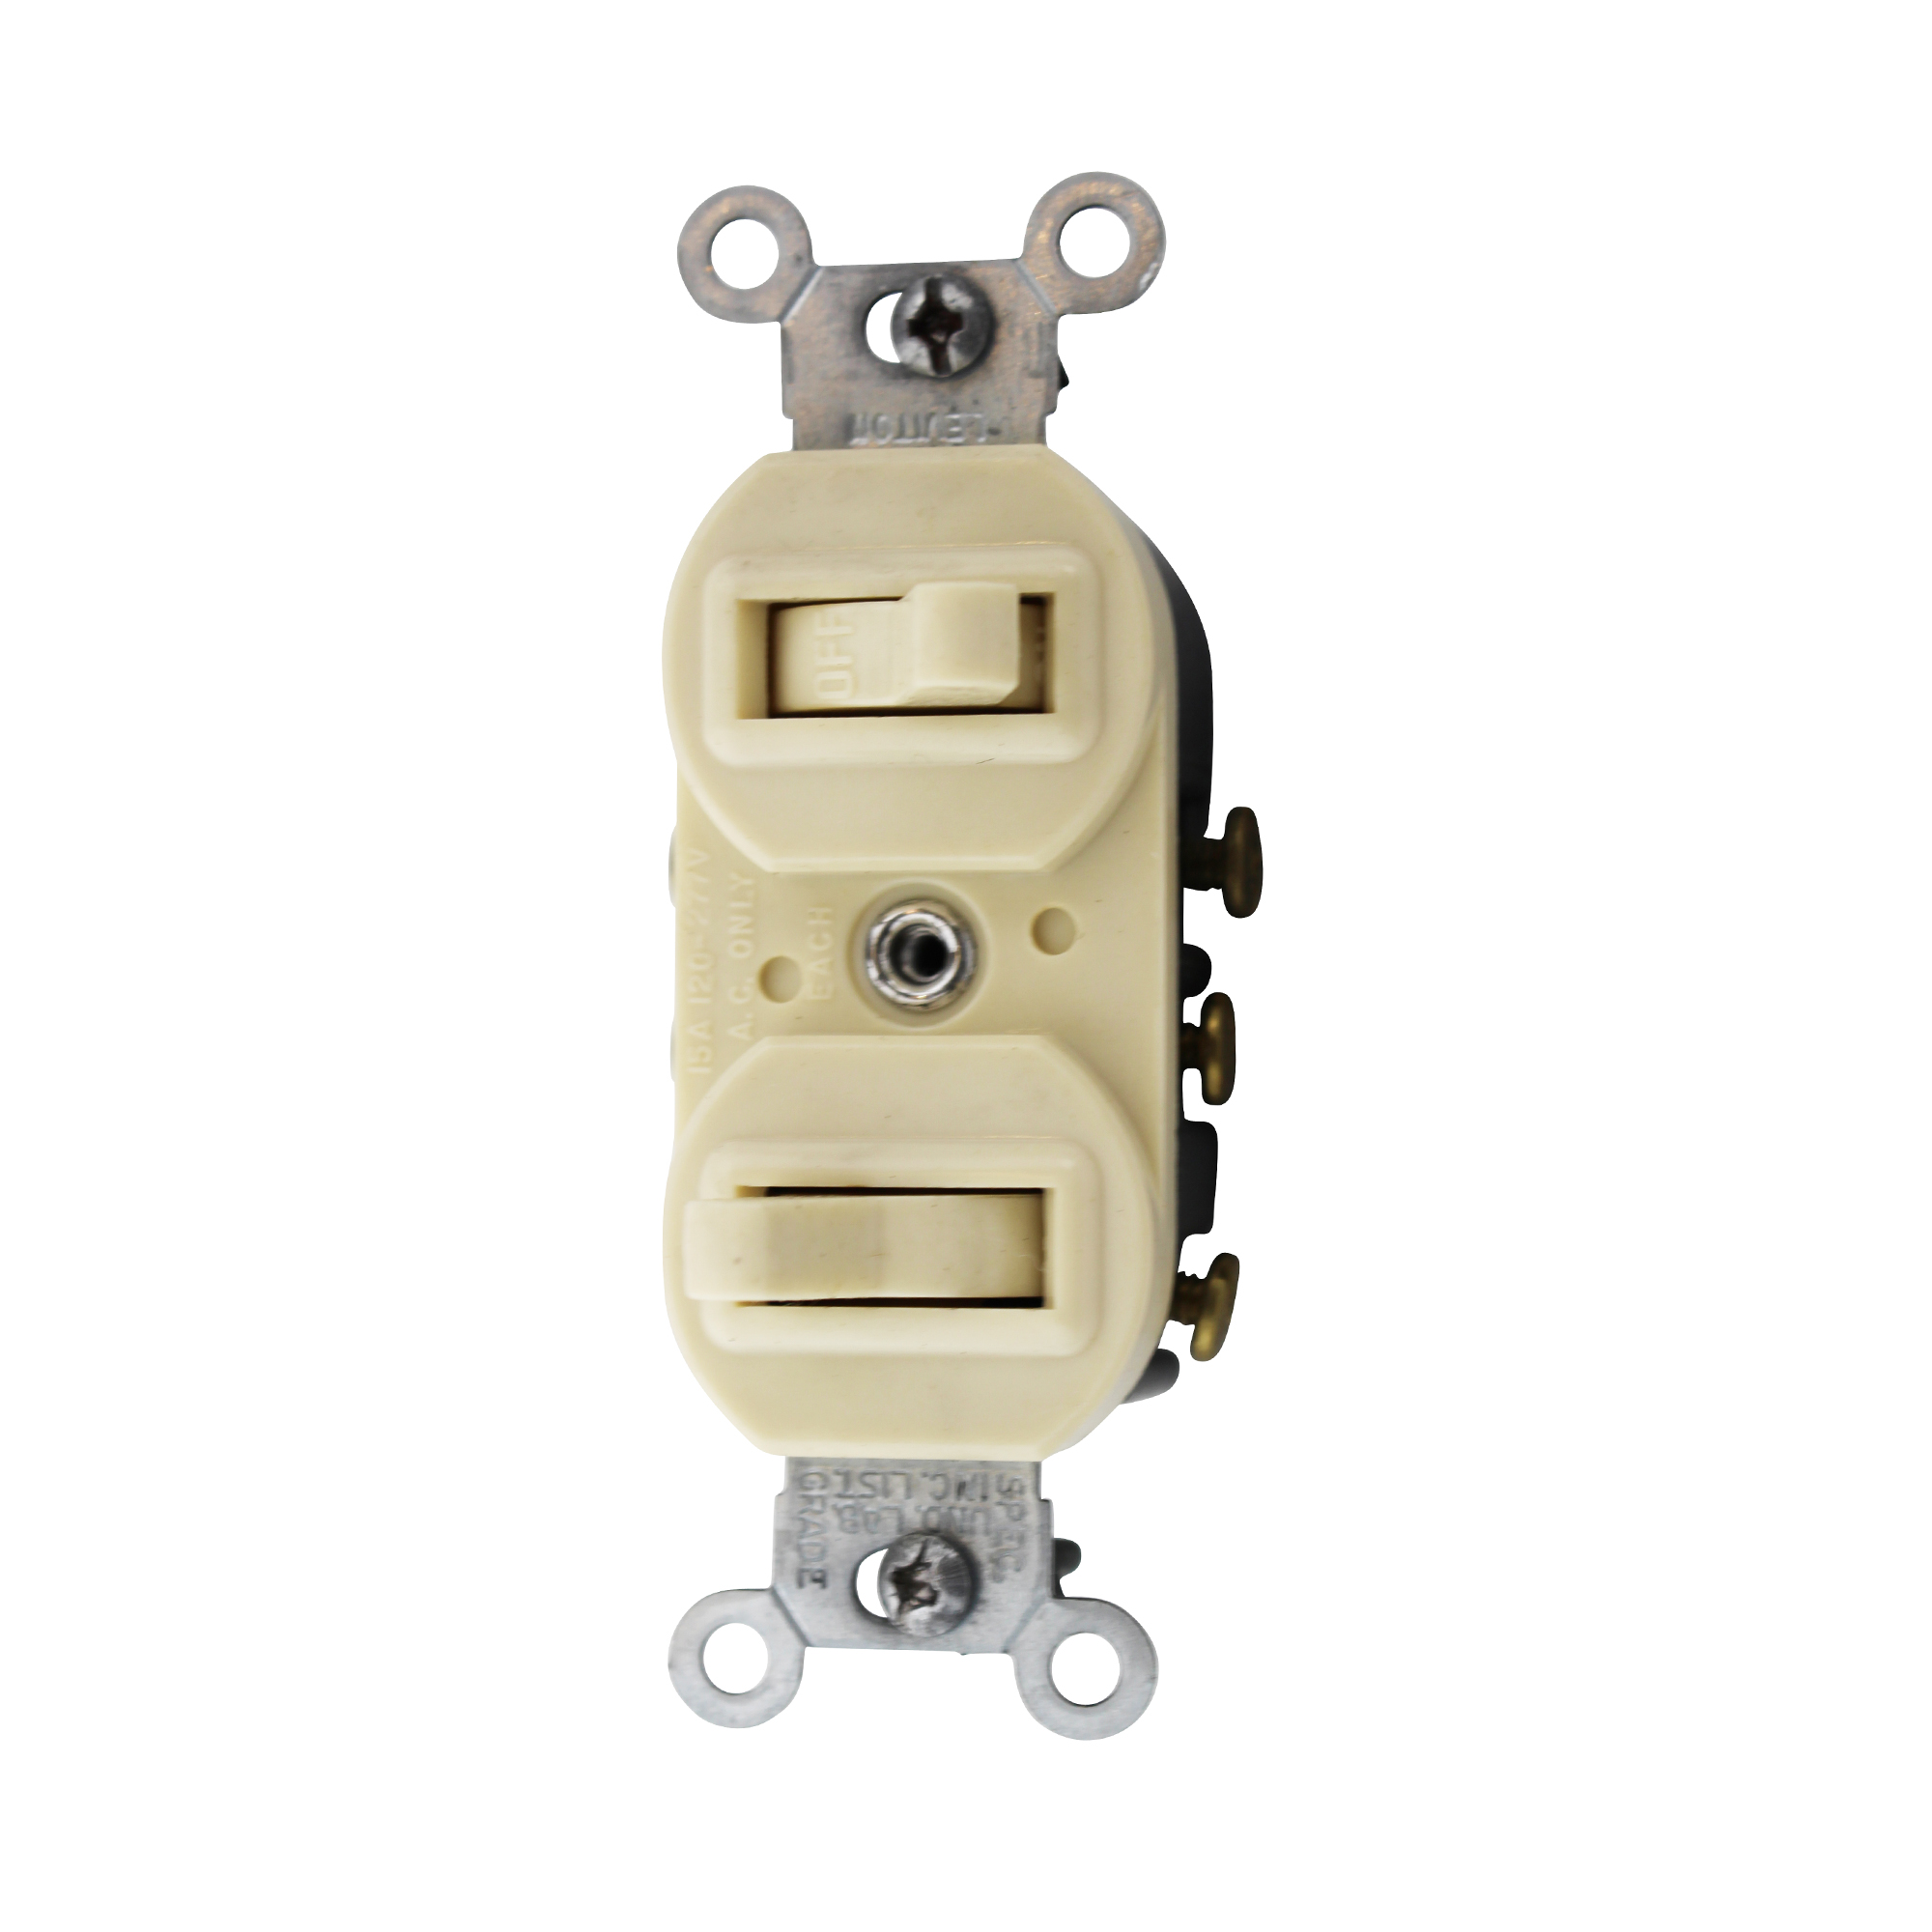 Leviton Dimmer Switches Wiring Diagram Dimmer Download 2 besides Leviton 5603 2w Wiring Diagram in addition Wiring Light Fixture With Red Wire further Watch in addition Single Dimmer Switch Wiring Diagram. on leviton single pole light switch diagram